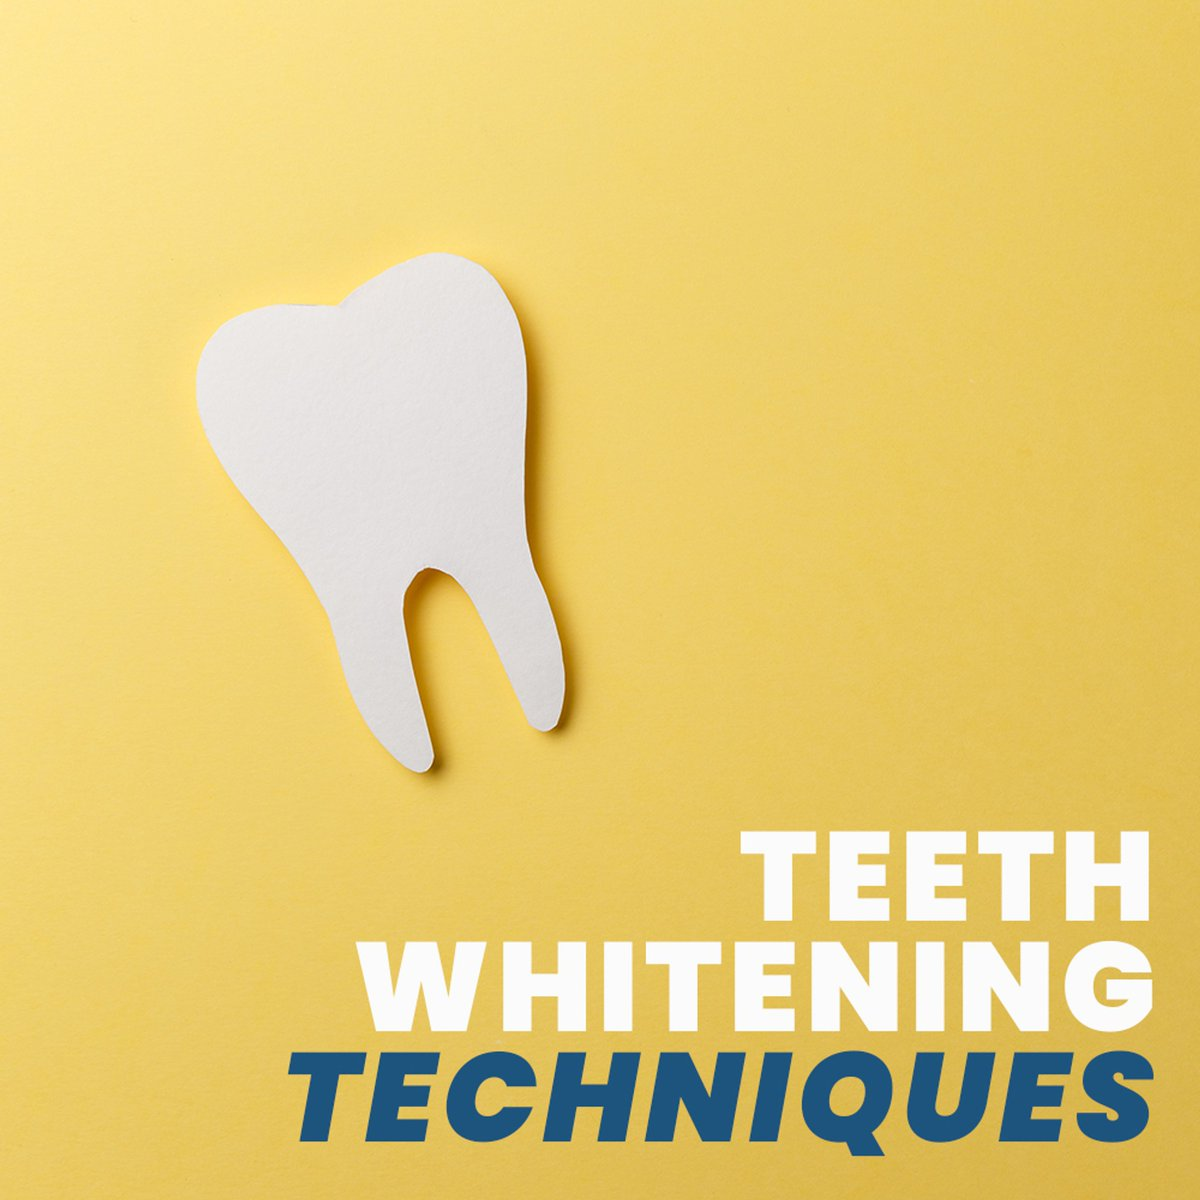 Are your teeth showing the signs of your coffee habit? Many people want a whiter smile, but are unsure of which #whitening technique to use.  Contact us and we can get your smile the bright, white shade you're looking for.  #teethwhitening #cosmeticdentistry #dentistrypic.twitter.com/si8JvrwDEX